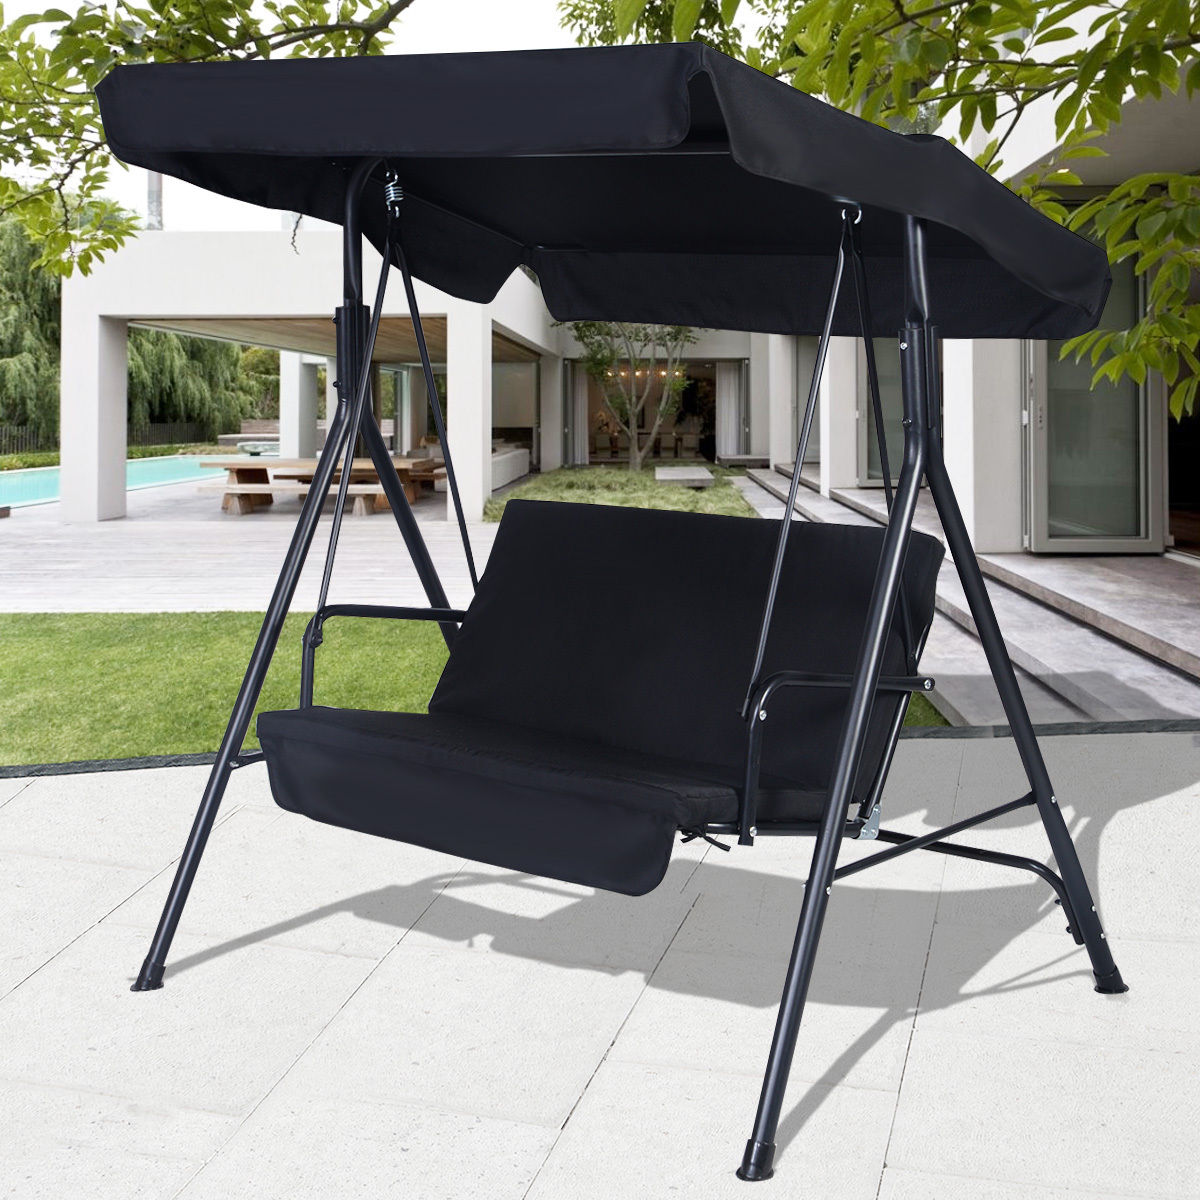 Costway 2 Person Outdoor Patio Swing Canopy Awning Yard Furniture Hammock Steel Black & Costway 2 Person Outdoor Patio Swing Canopy Awning Yard Furniture ...